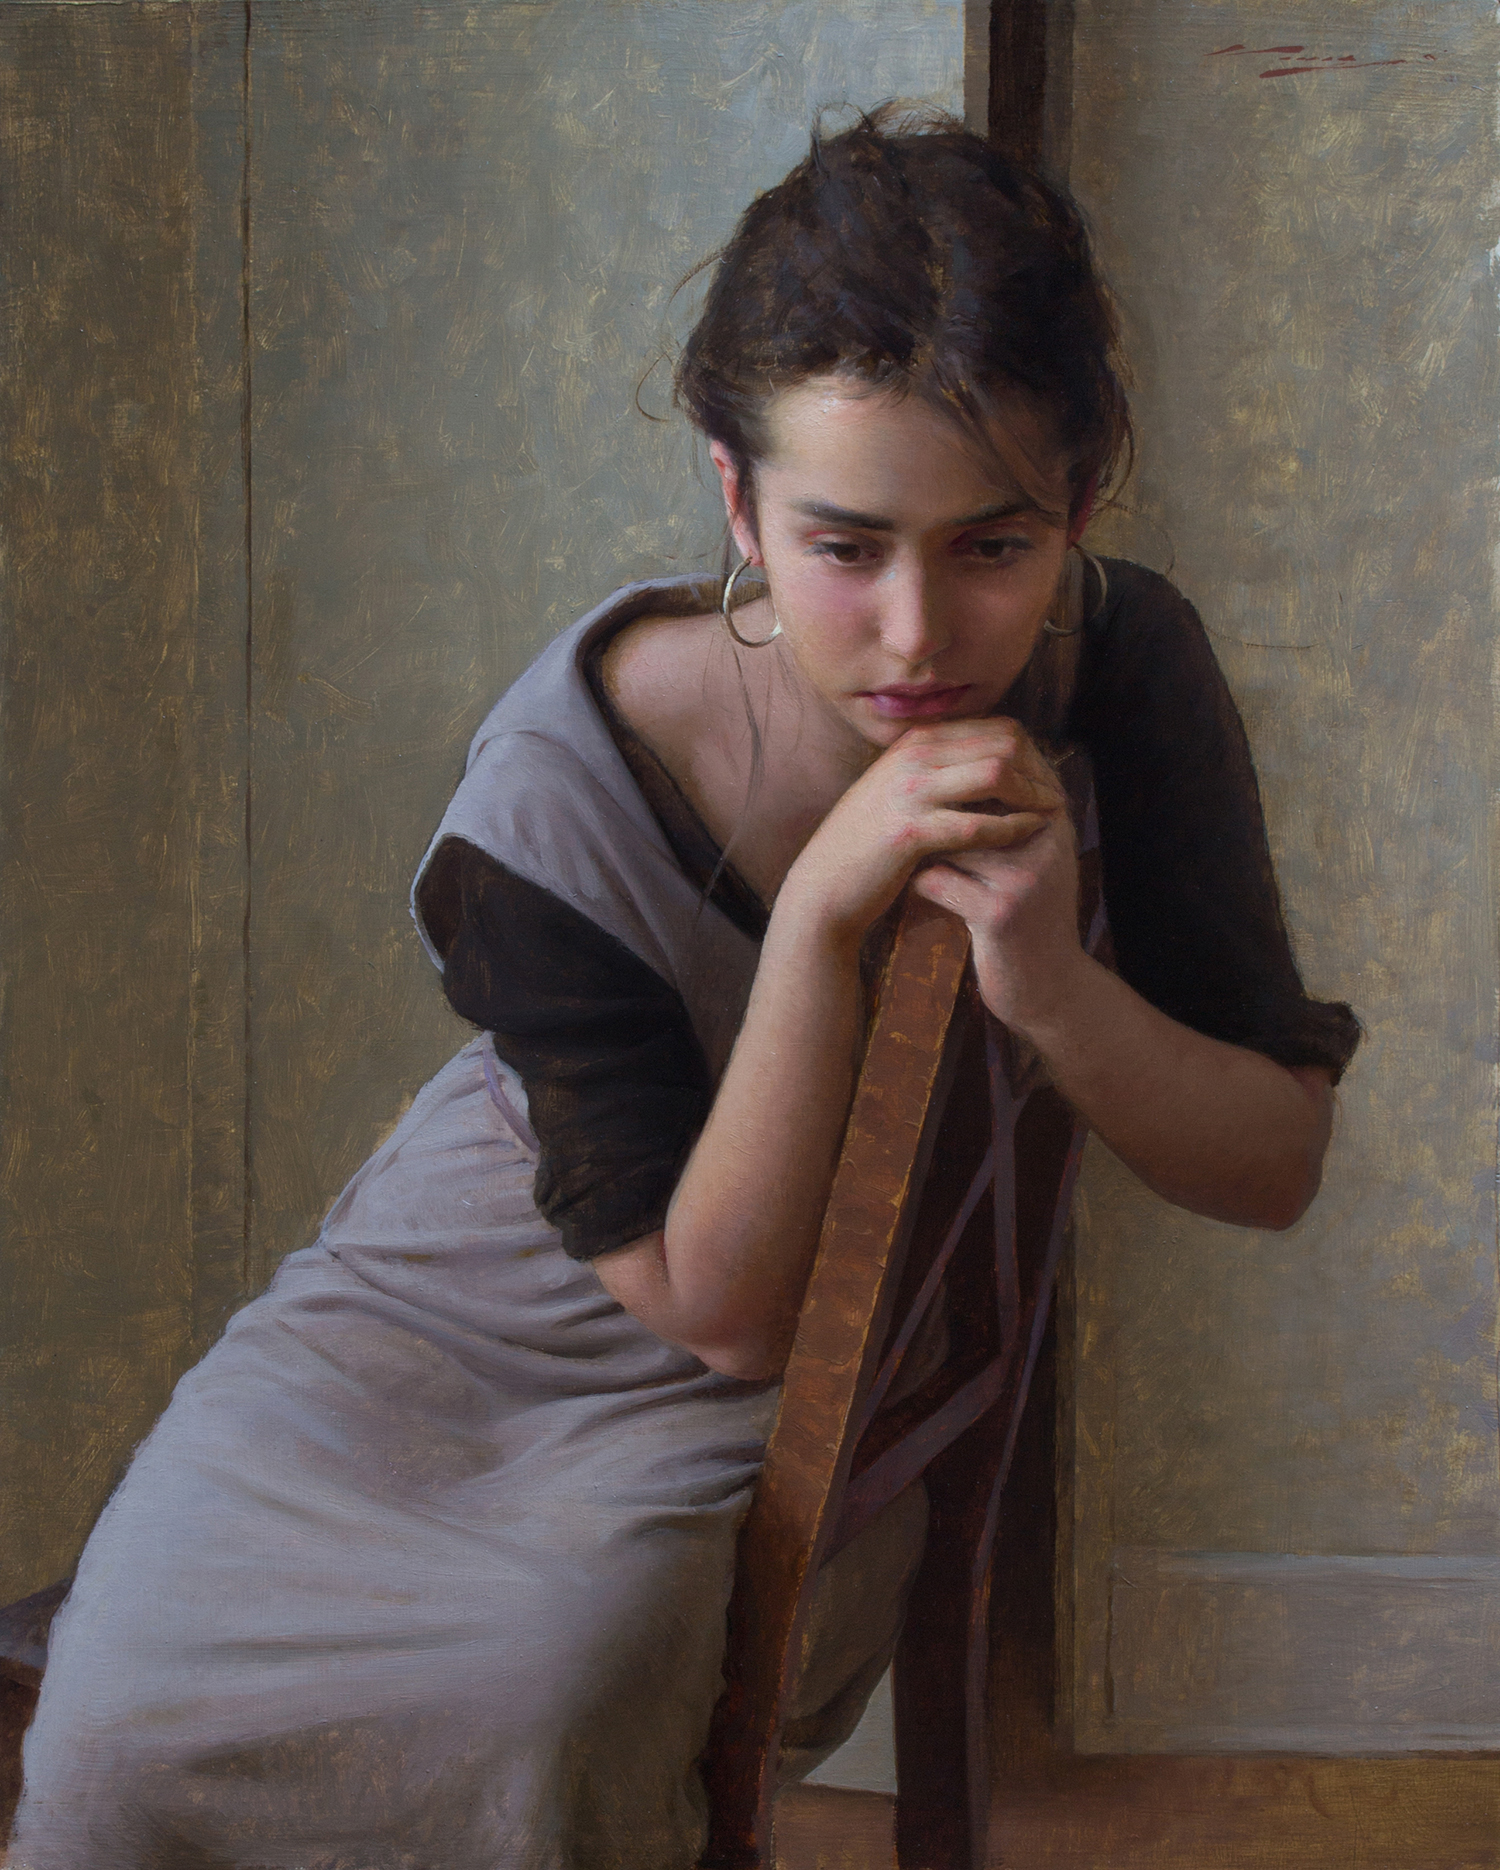 """Haunting"" takes home : 1st Place Painting & People's Choice Award at The 2019 Portrait Society of America's -""International Portrait Competition"" -"